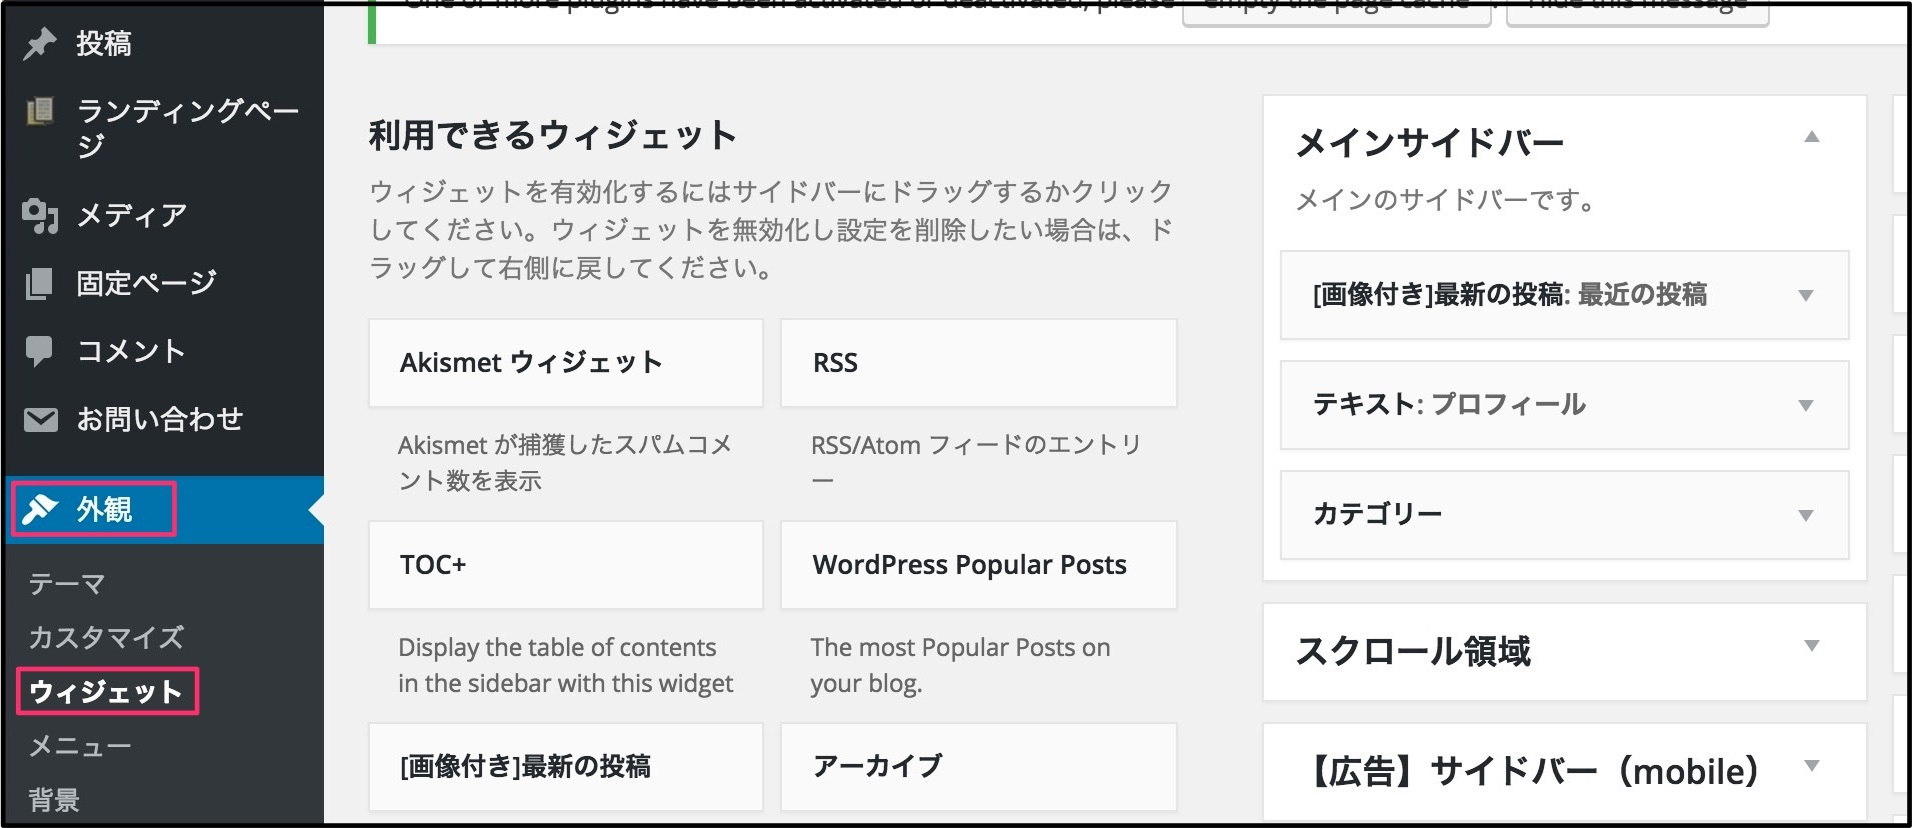 wordpress popular post4